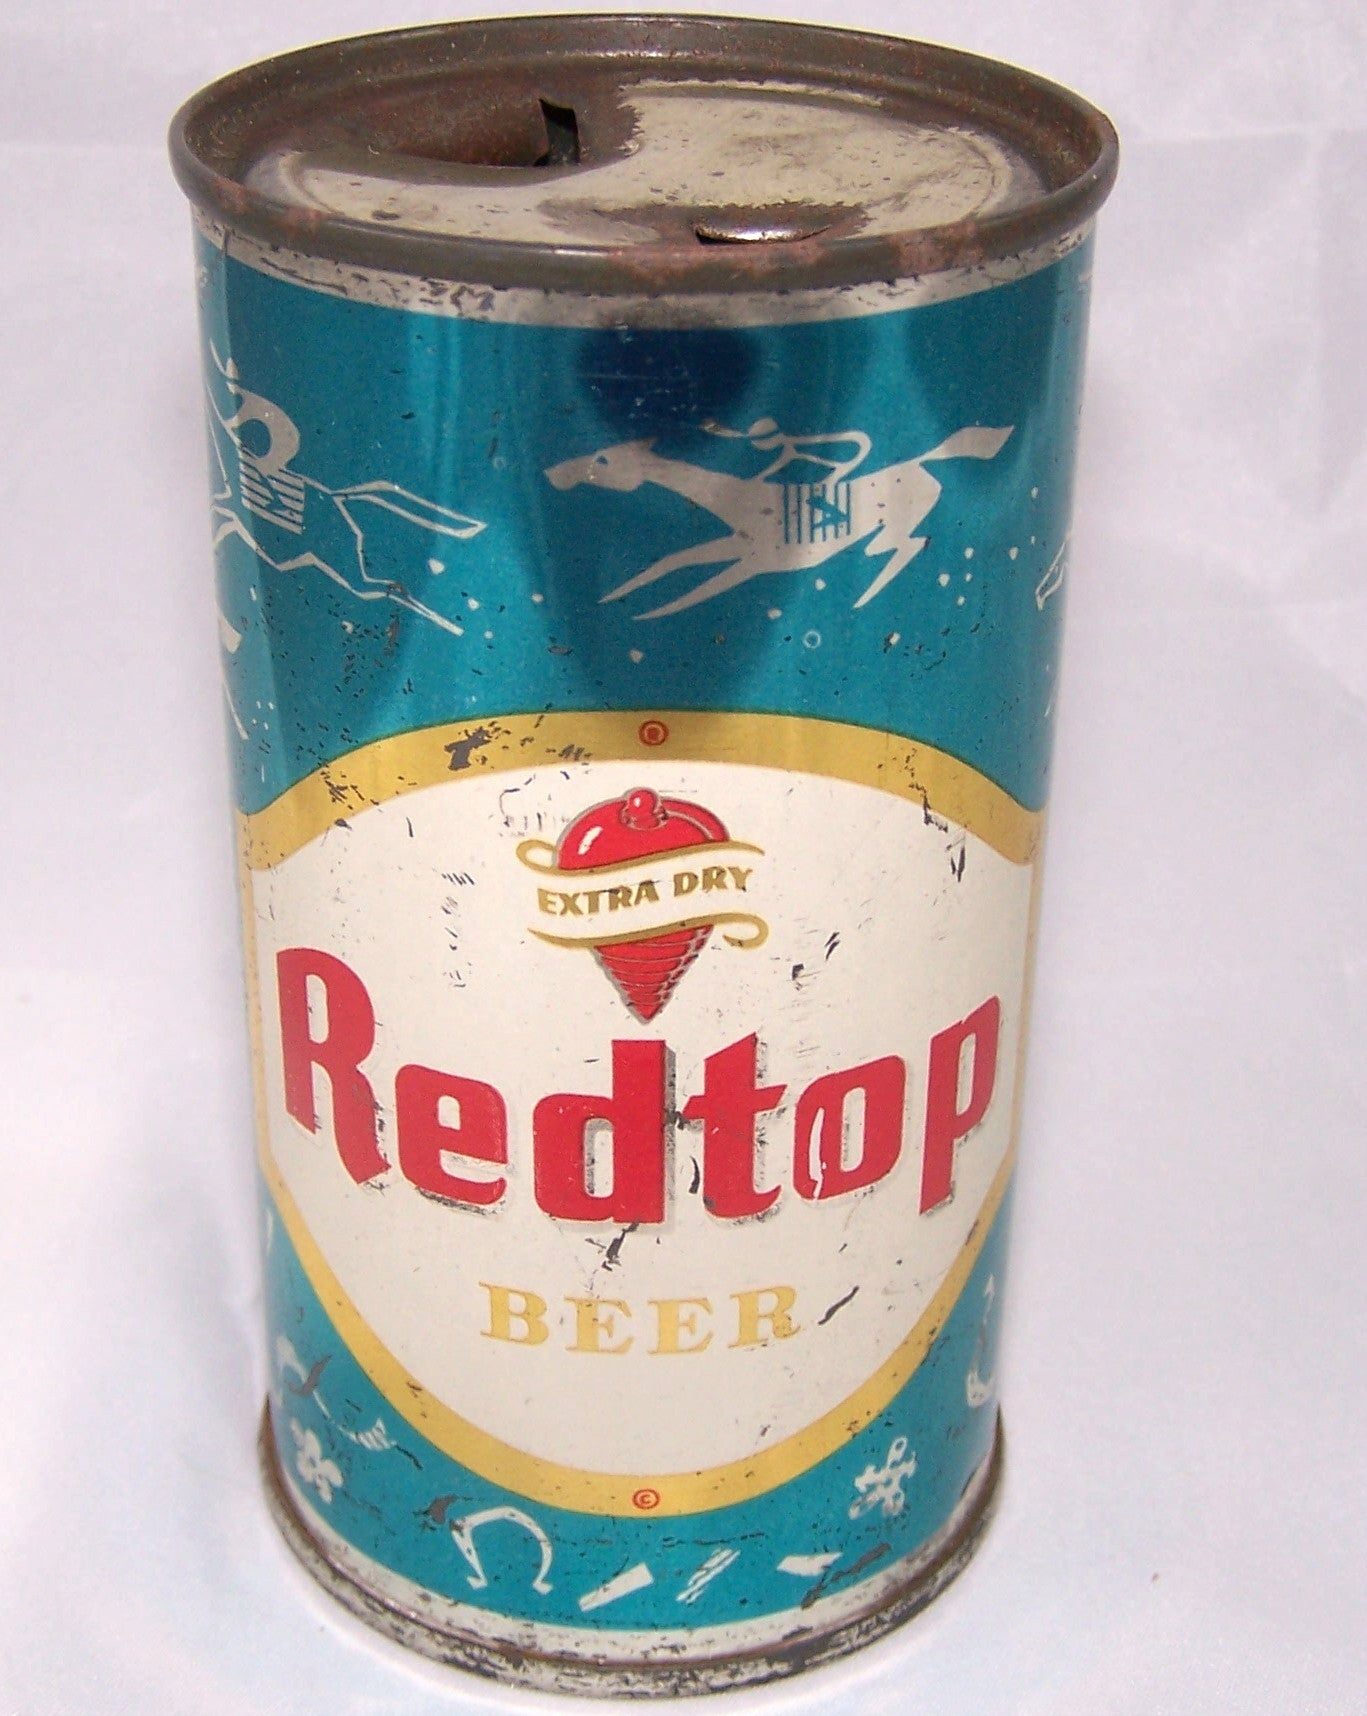 Red Top Beer (Horse Racing) Blue can, USBC 120-9, Grade 1/1- Traded 7/11/15